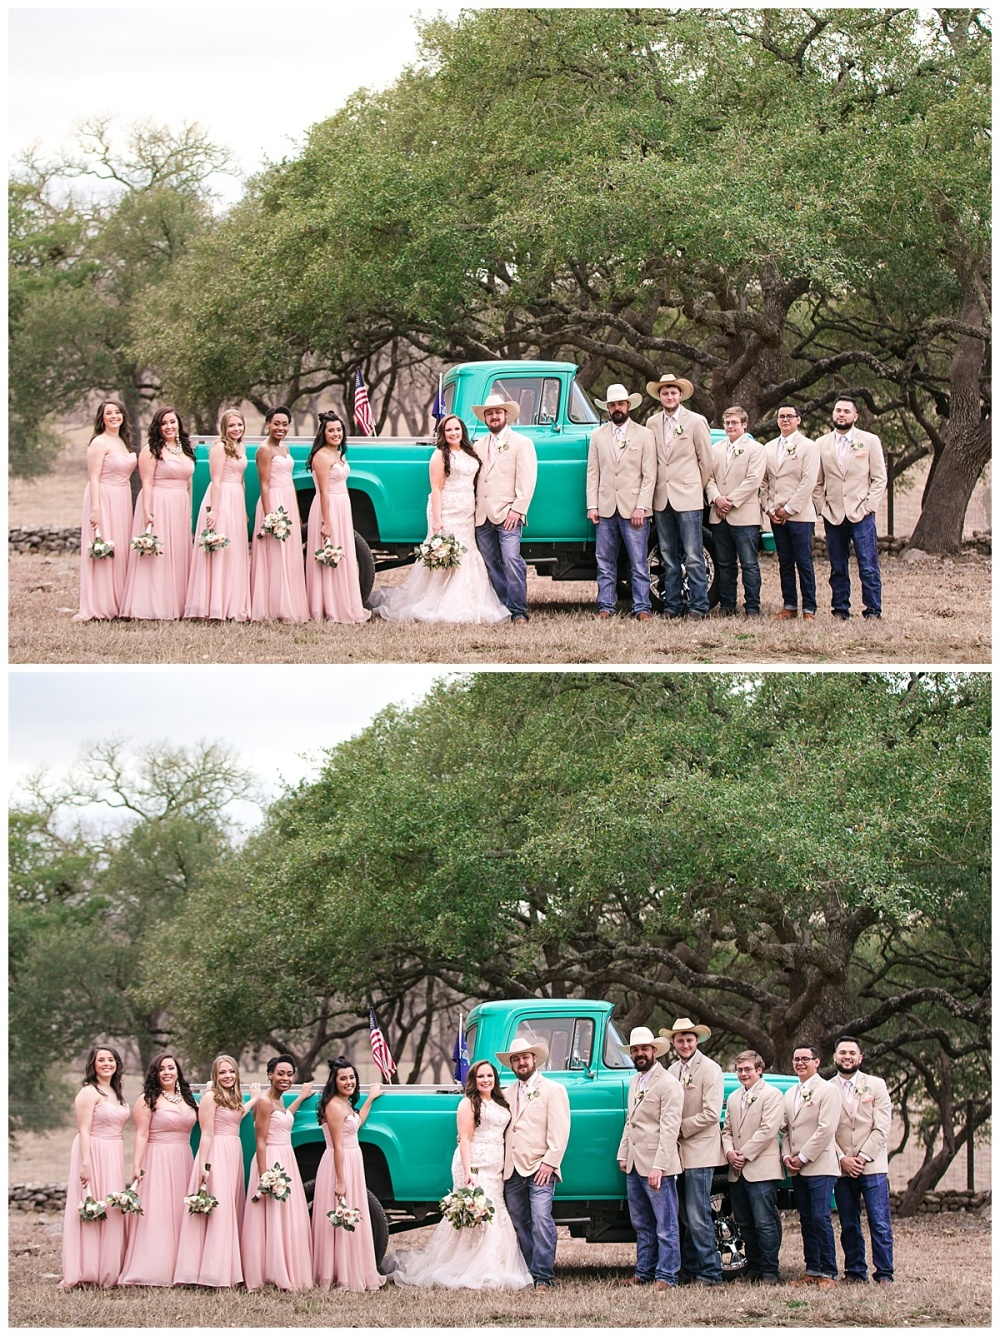 Carly-Barton-Photography-Branded-T-Ranch-Kendalia-Texas-Hill-Country-Wedding_0045.jpg